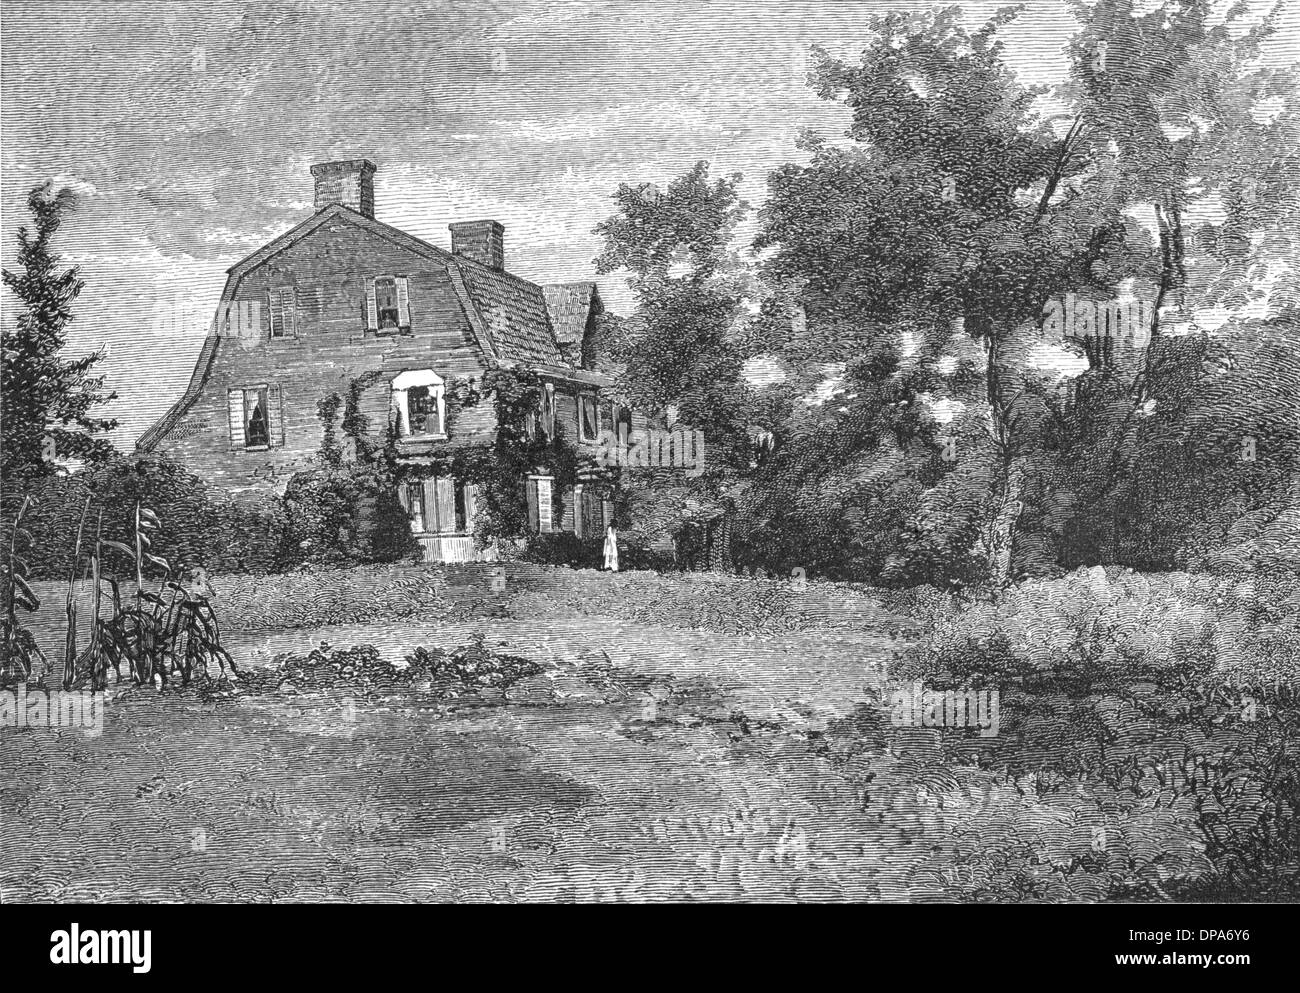 RW EMERSON/OLD MANSE - Stock Image